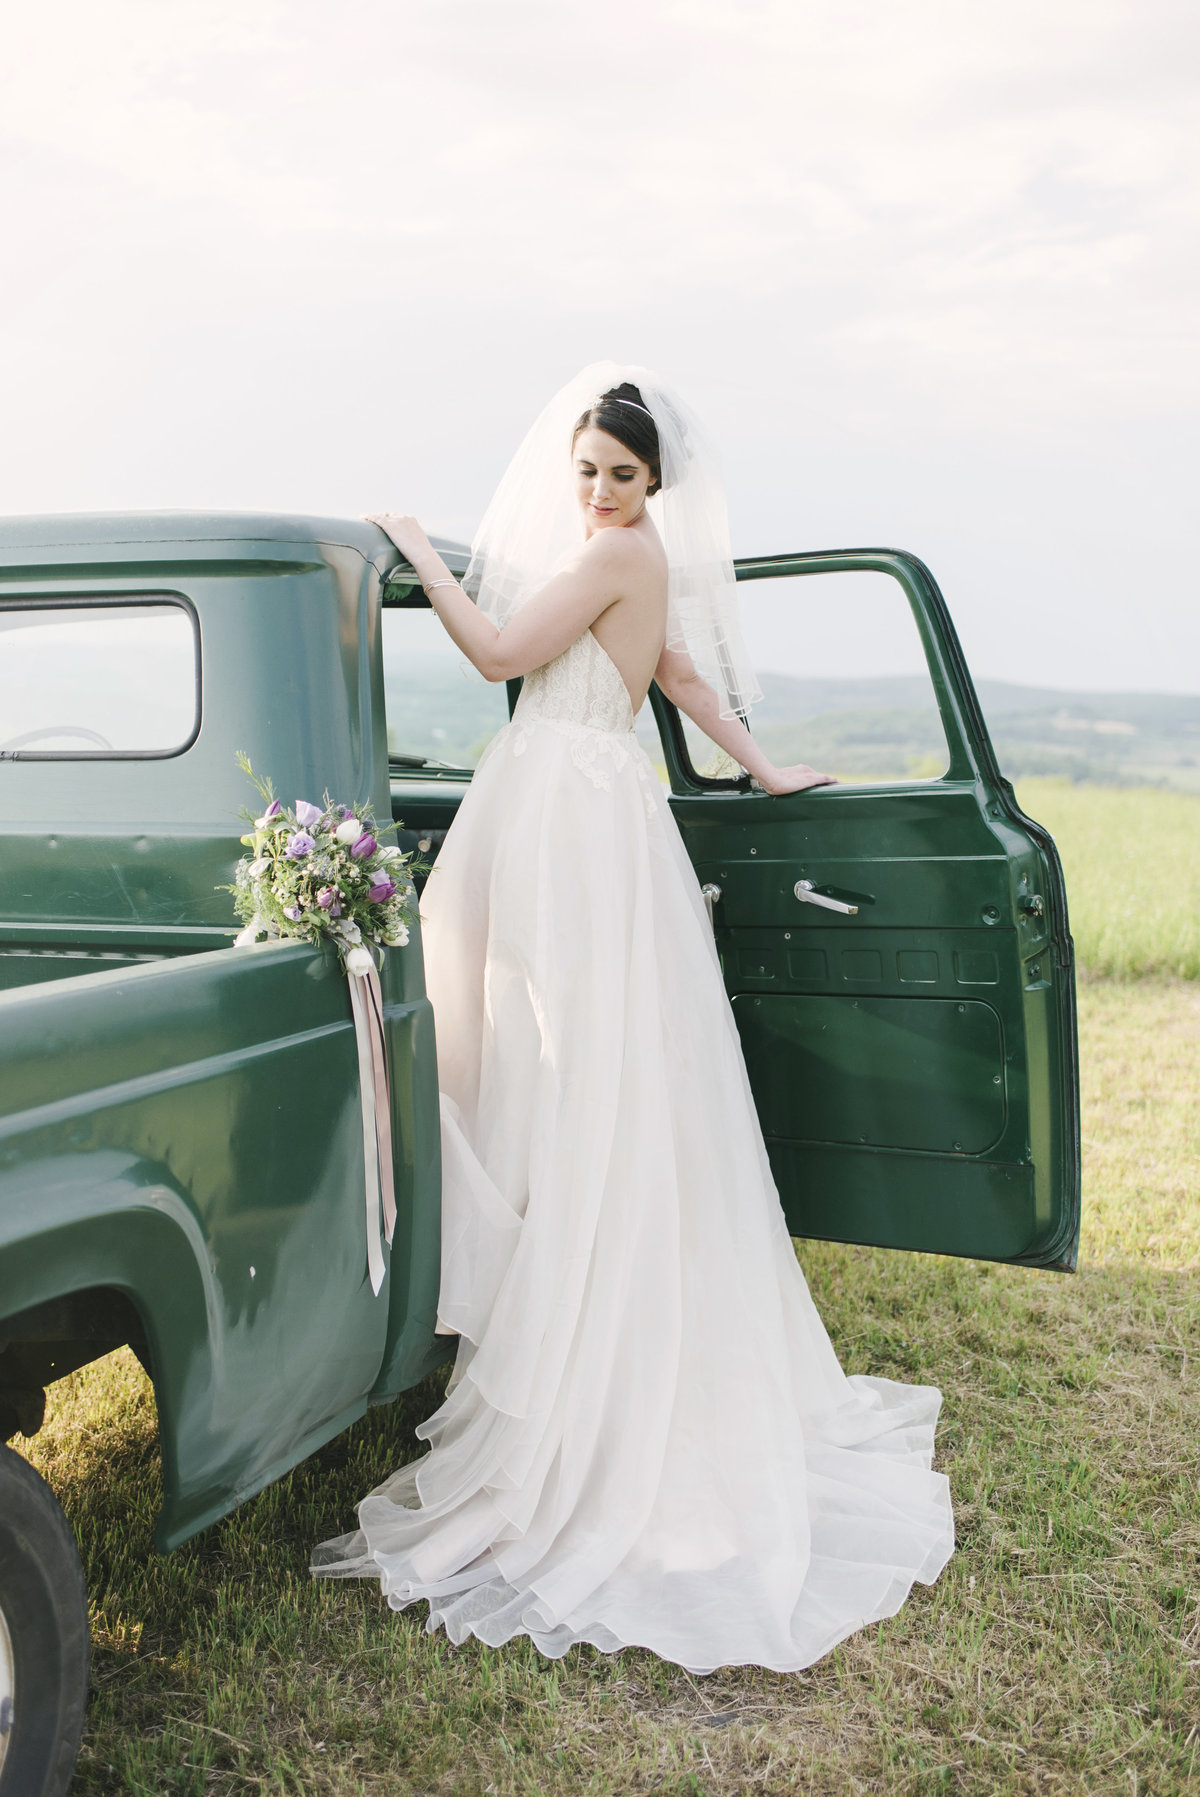 Monica-Relyea-Events-Alicia-King-Photography-Globe-Hill-Ronnybrook-Farm-Hudson-Valley-wedding-shoot-inspiration68